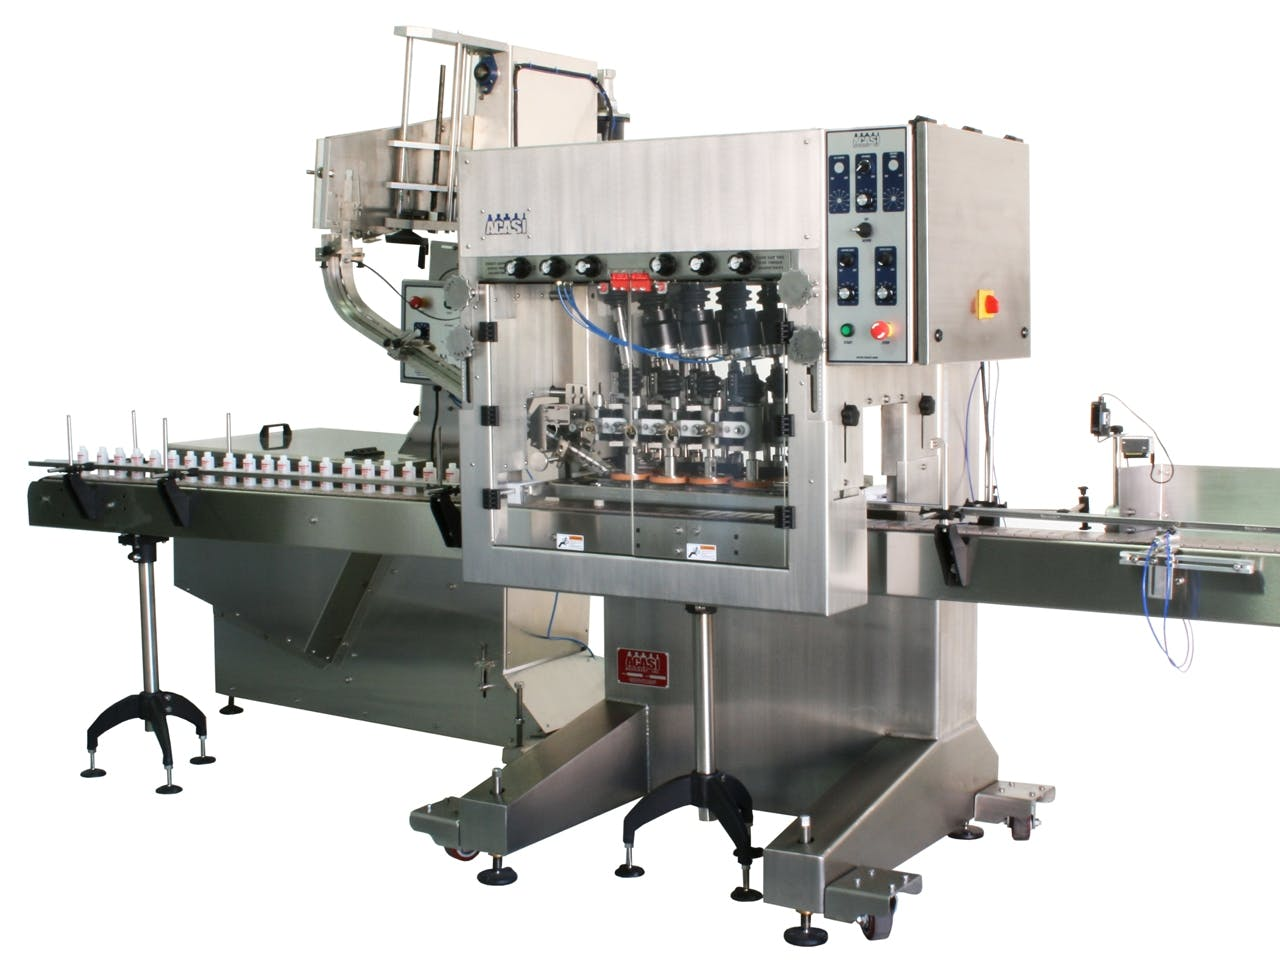 Automatic Inline Bottle Capping Machine Model CAI-X-WFall Bottle capper sold by ACASI Machinery